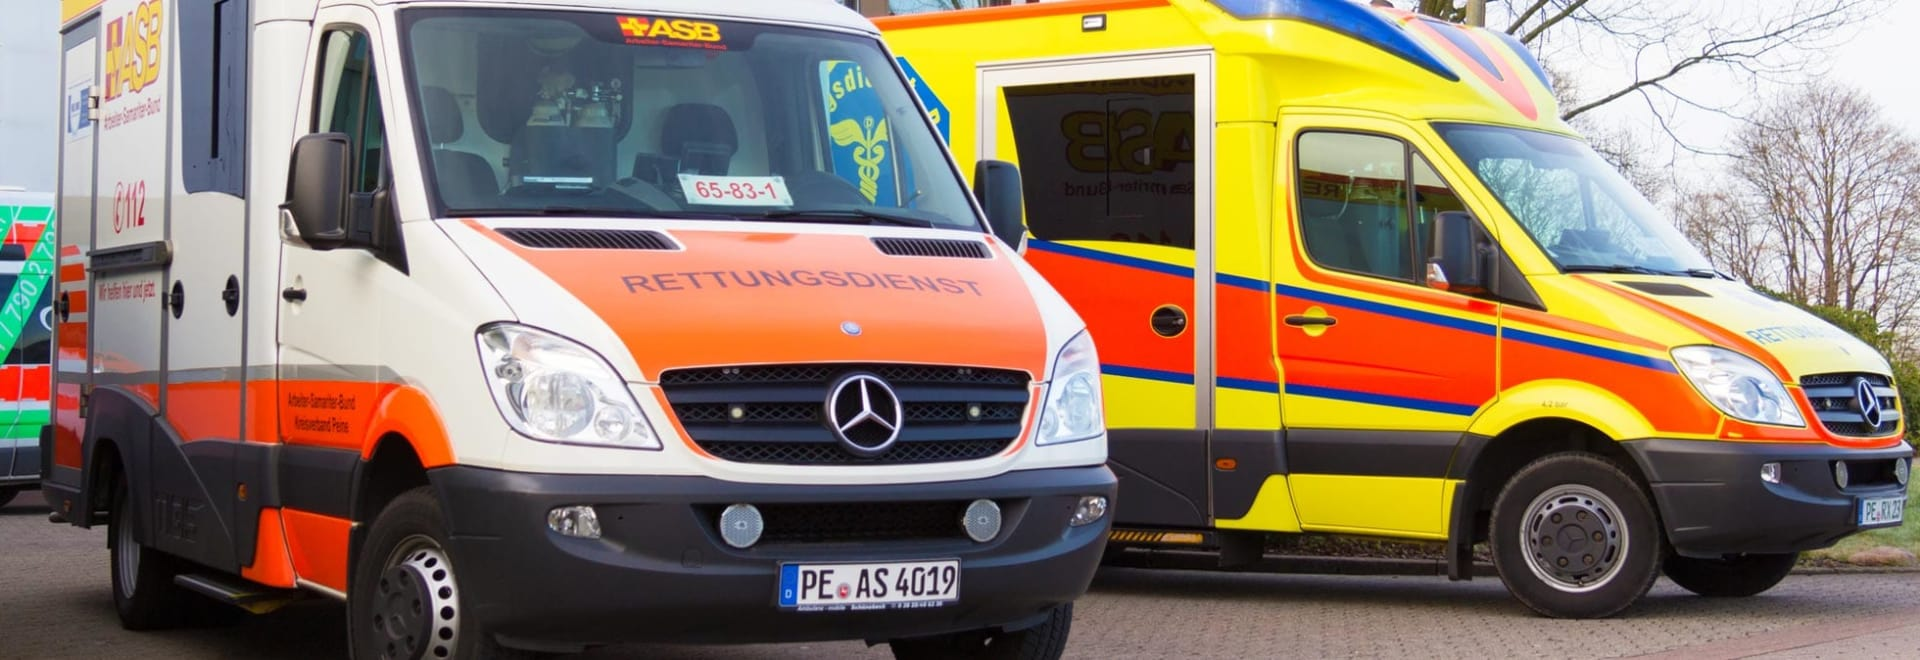 European ambulances remind U.S. travelers overseas of the need for international travel health insurance